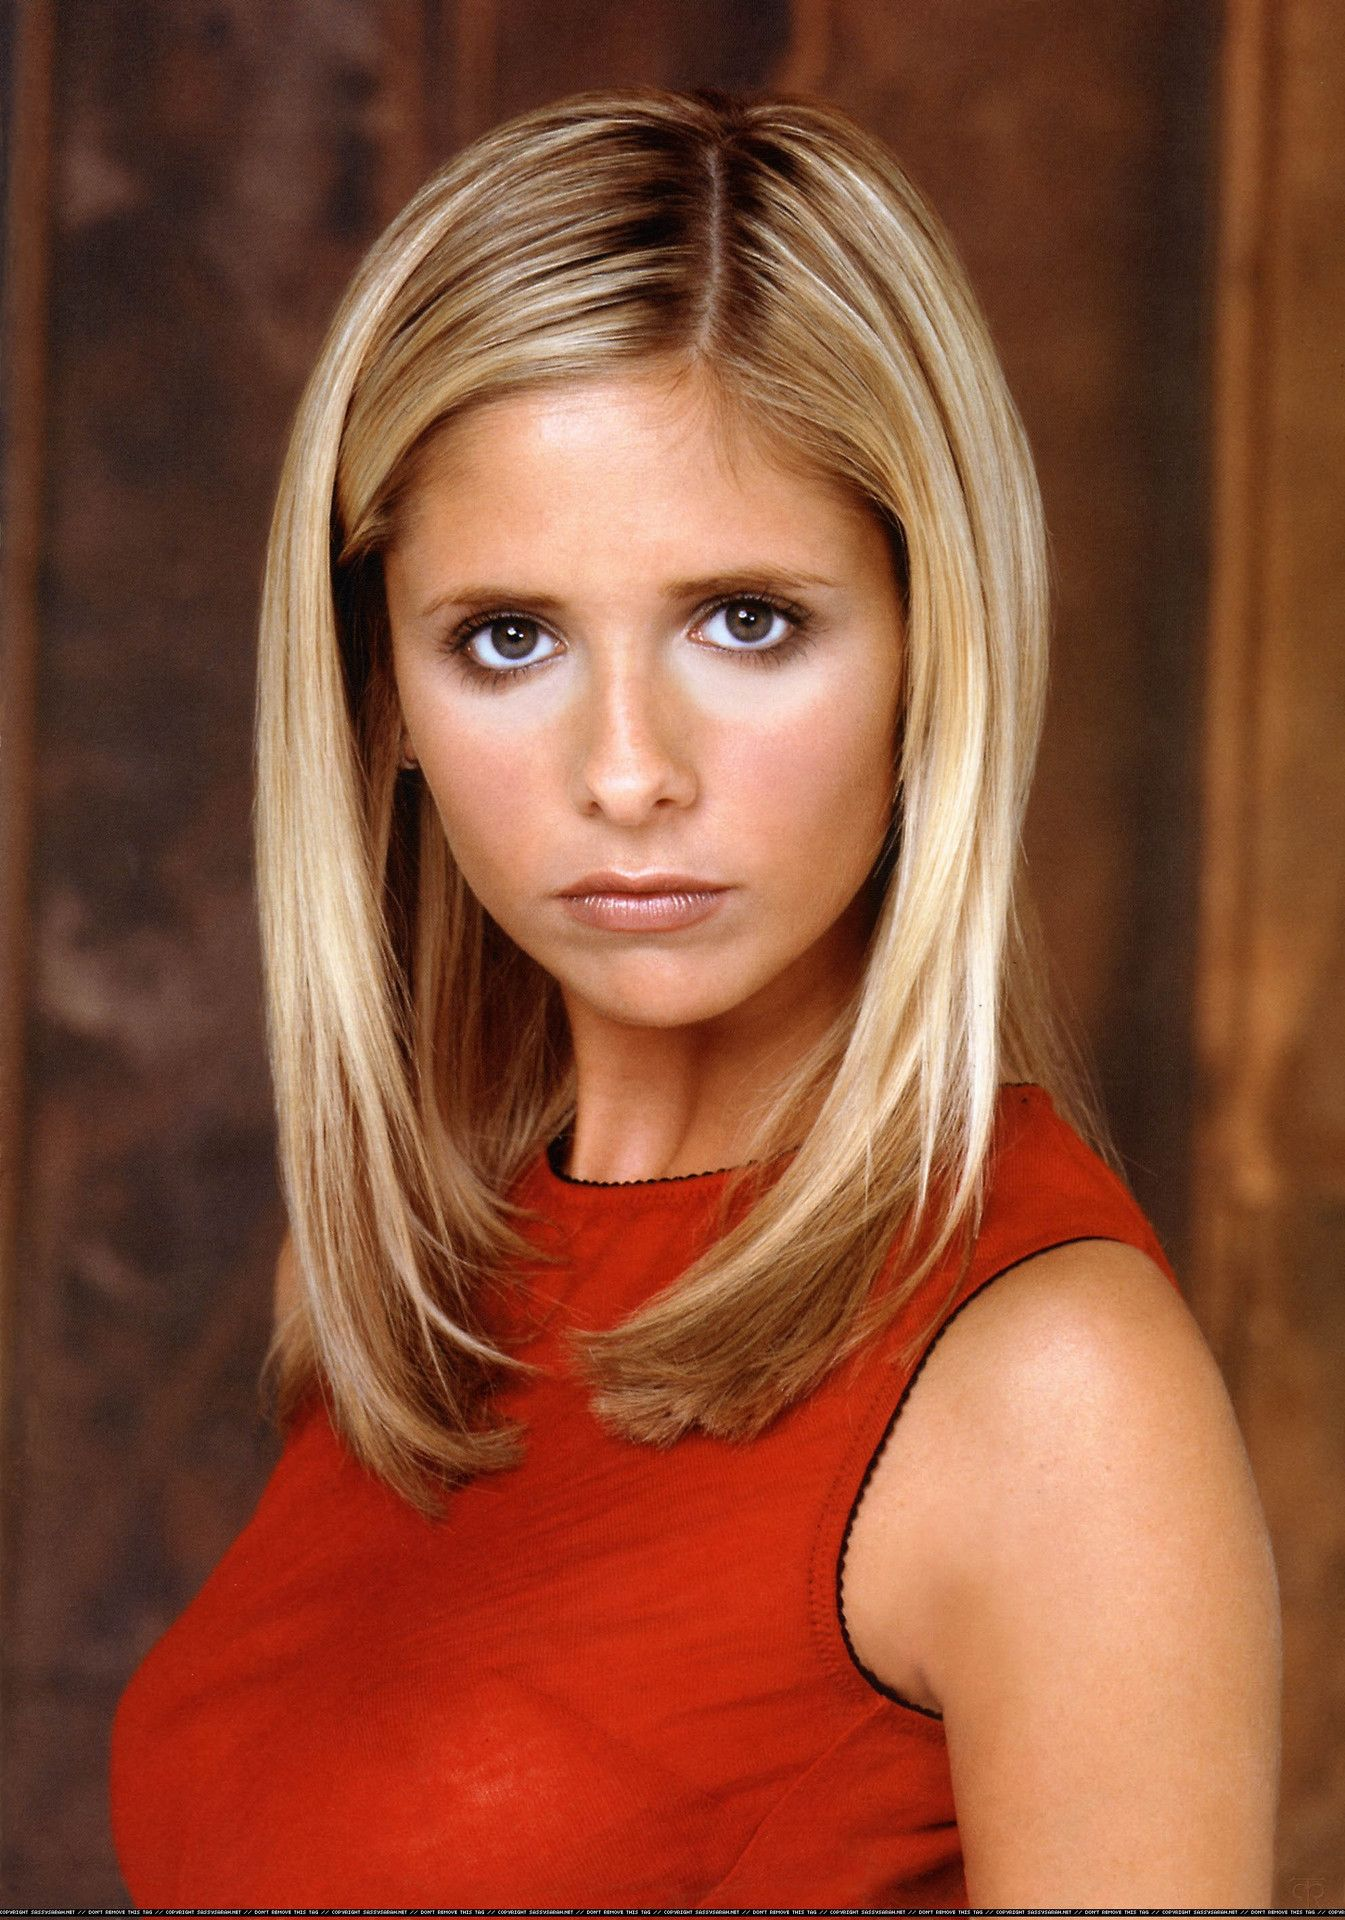 Buffy Summers (played by Sarah Michelle Geller on Buffy the Vampire Slayer)